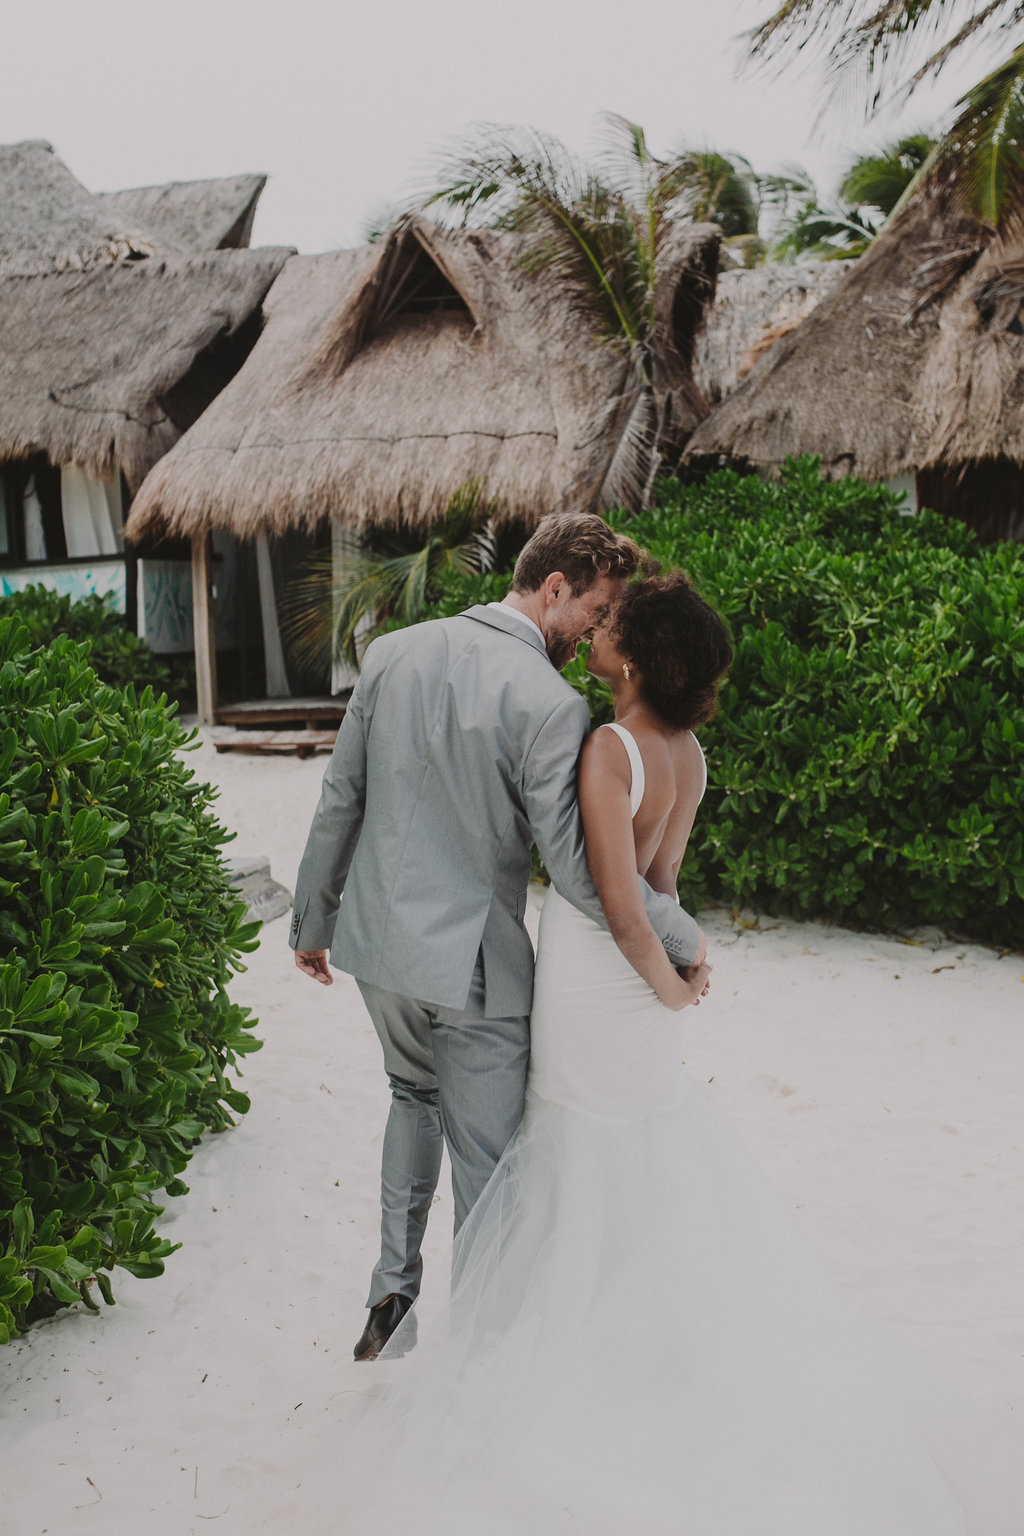 casa_violeta_wedding_tulum_photography_planner_rock_and_roll_chellisemichaelphotography_kerrybeachevents-8386.jpg